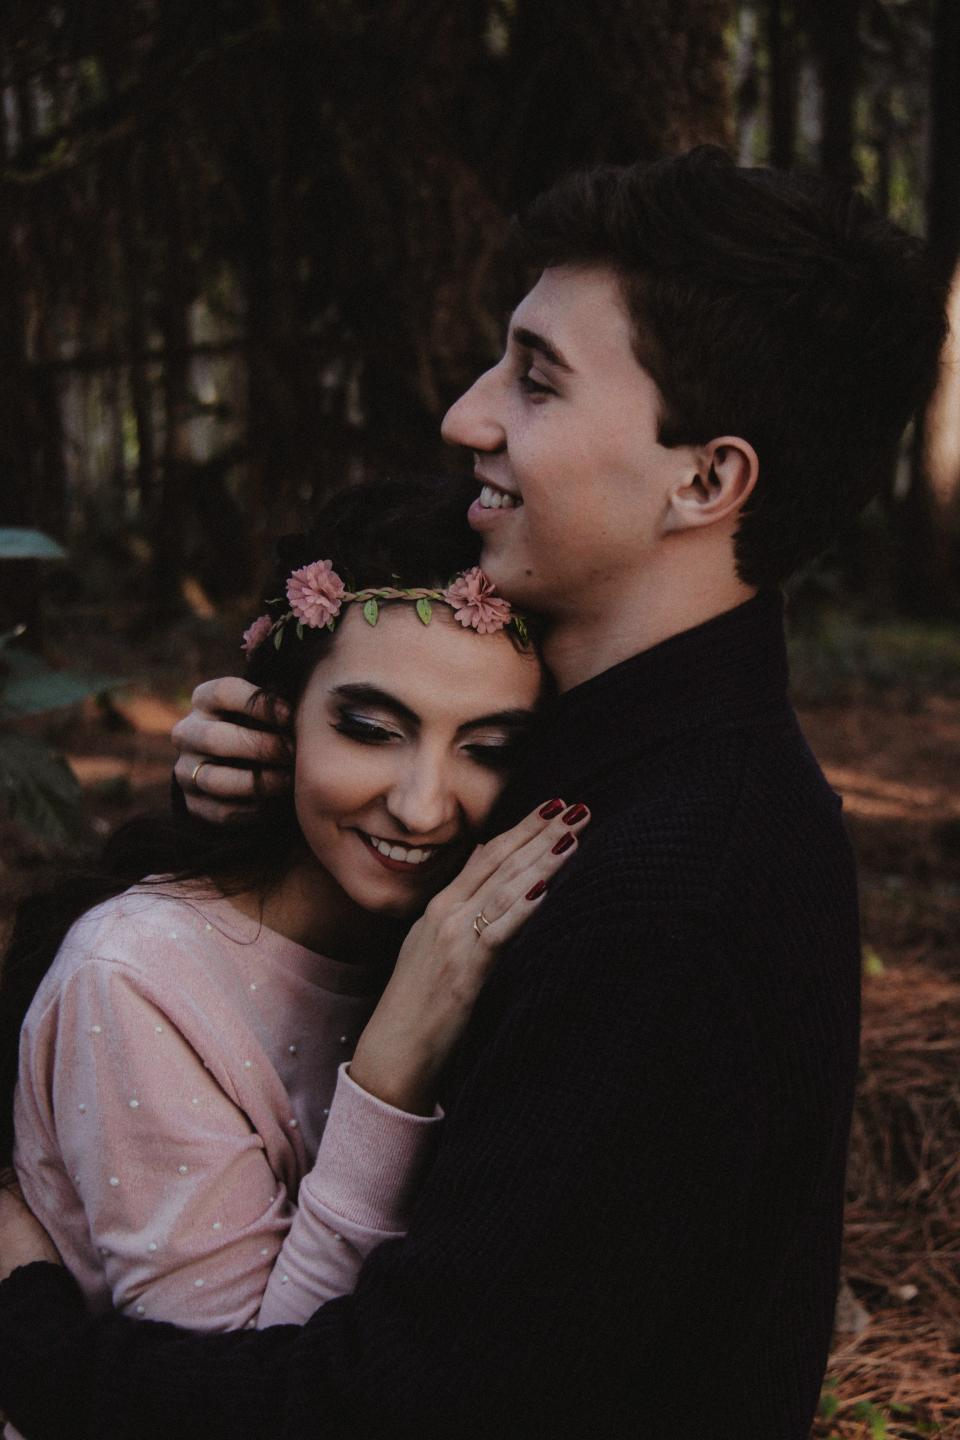 man woman girl guy couple people sweet love hug fashion model smile happy flowers bokeh nature blur